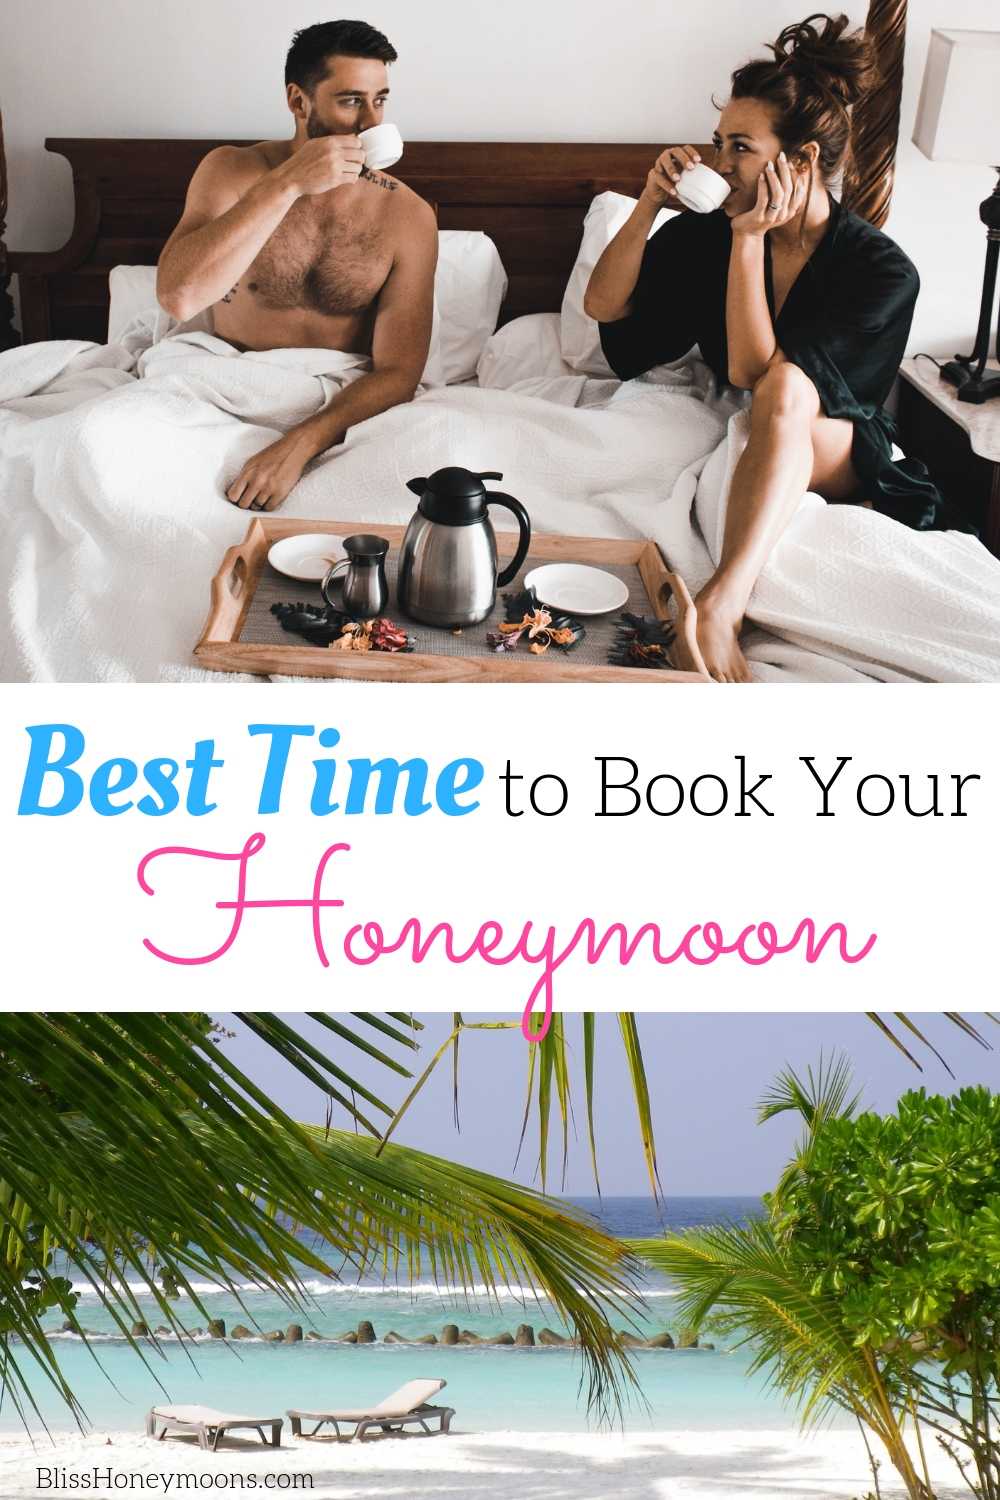 best time to book your honeymoon